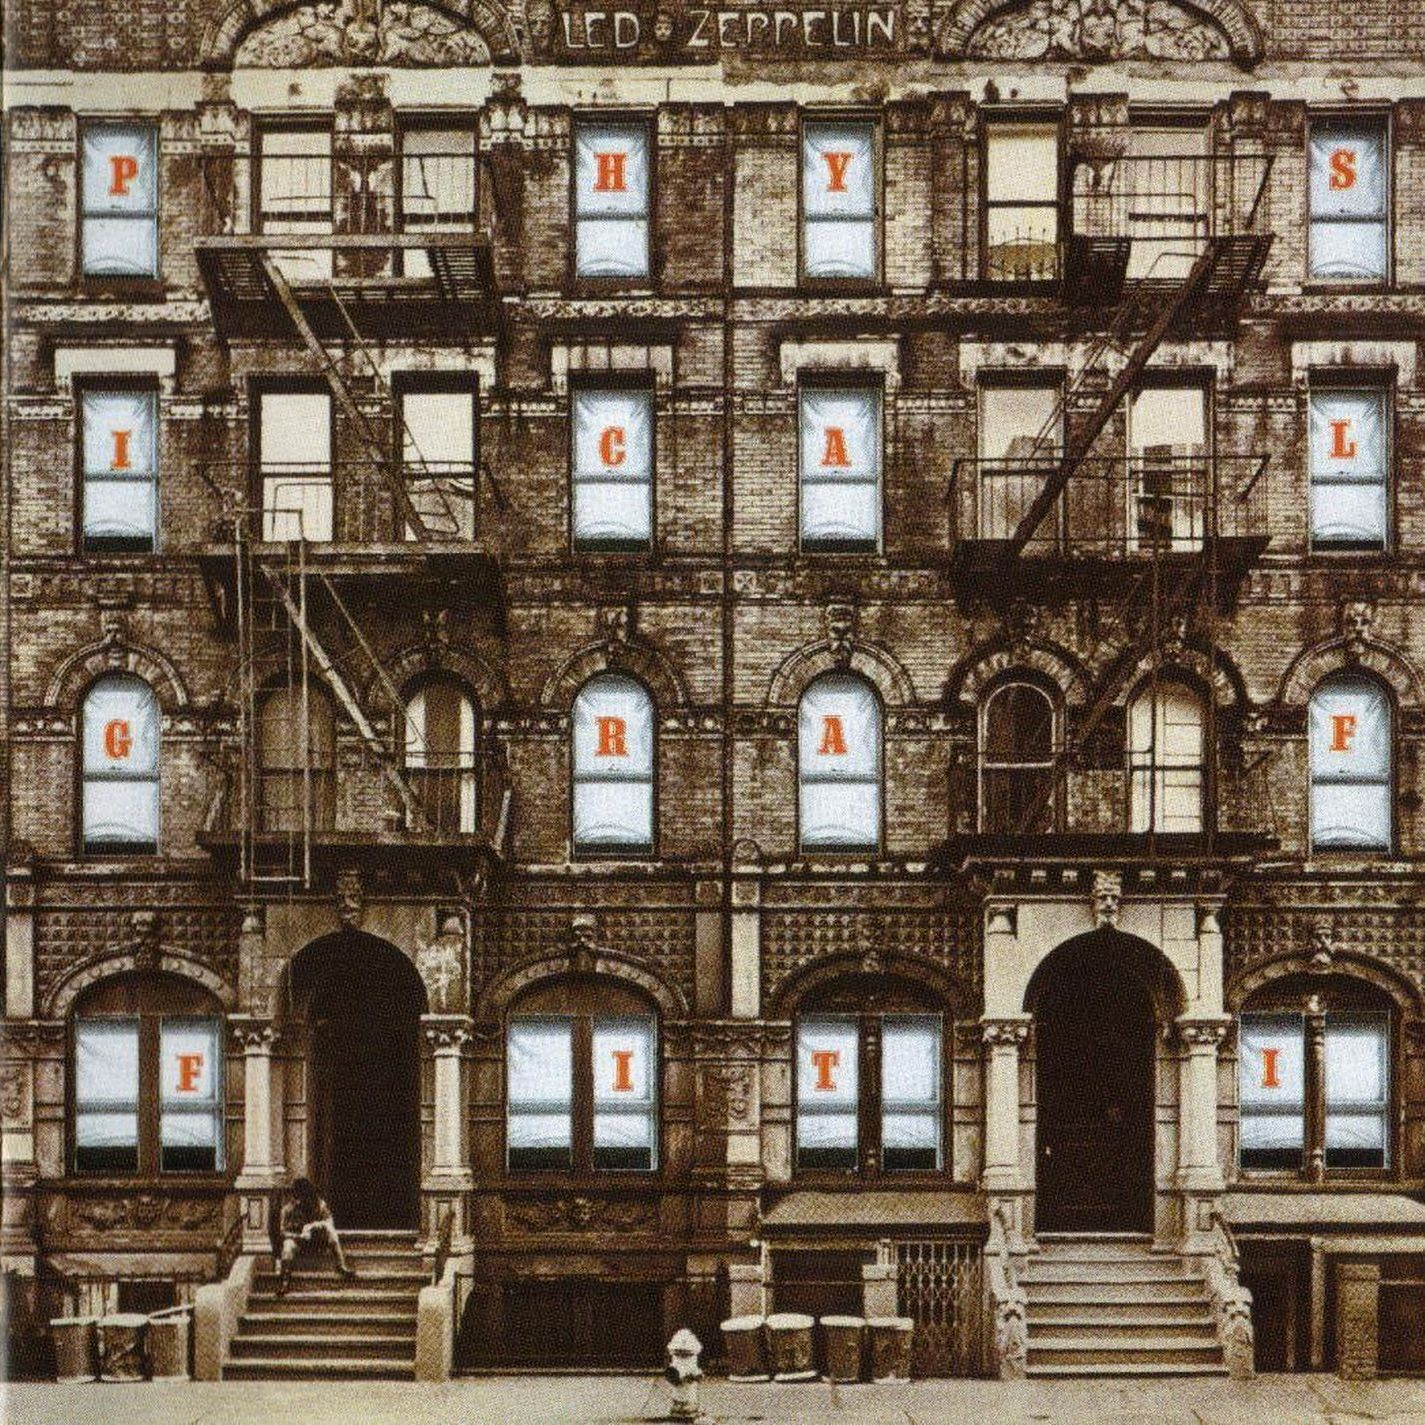 1975 - Physical Graffiti